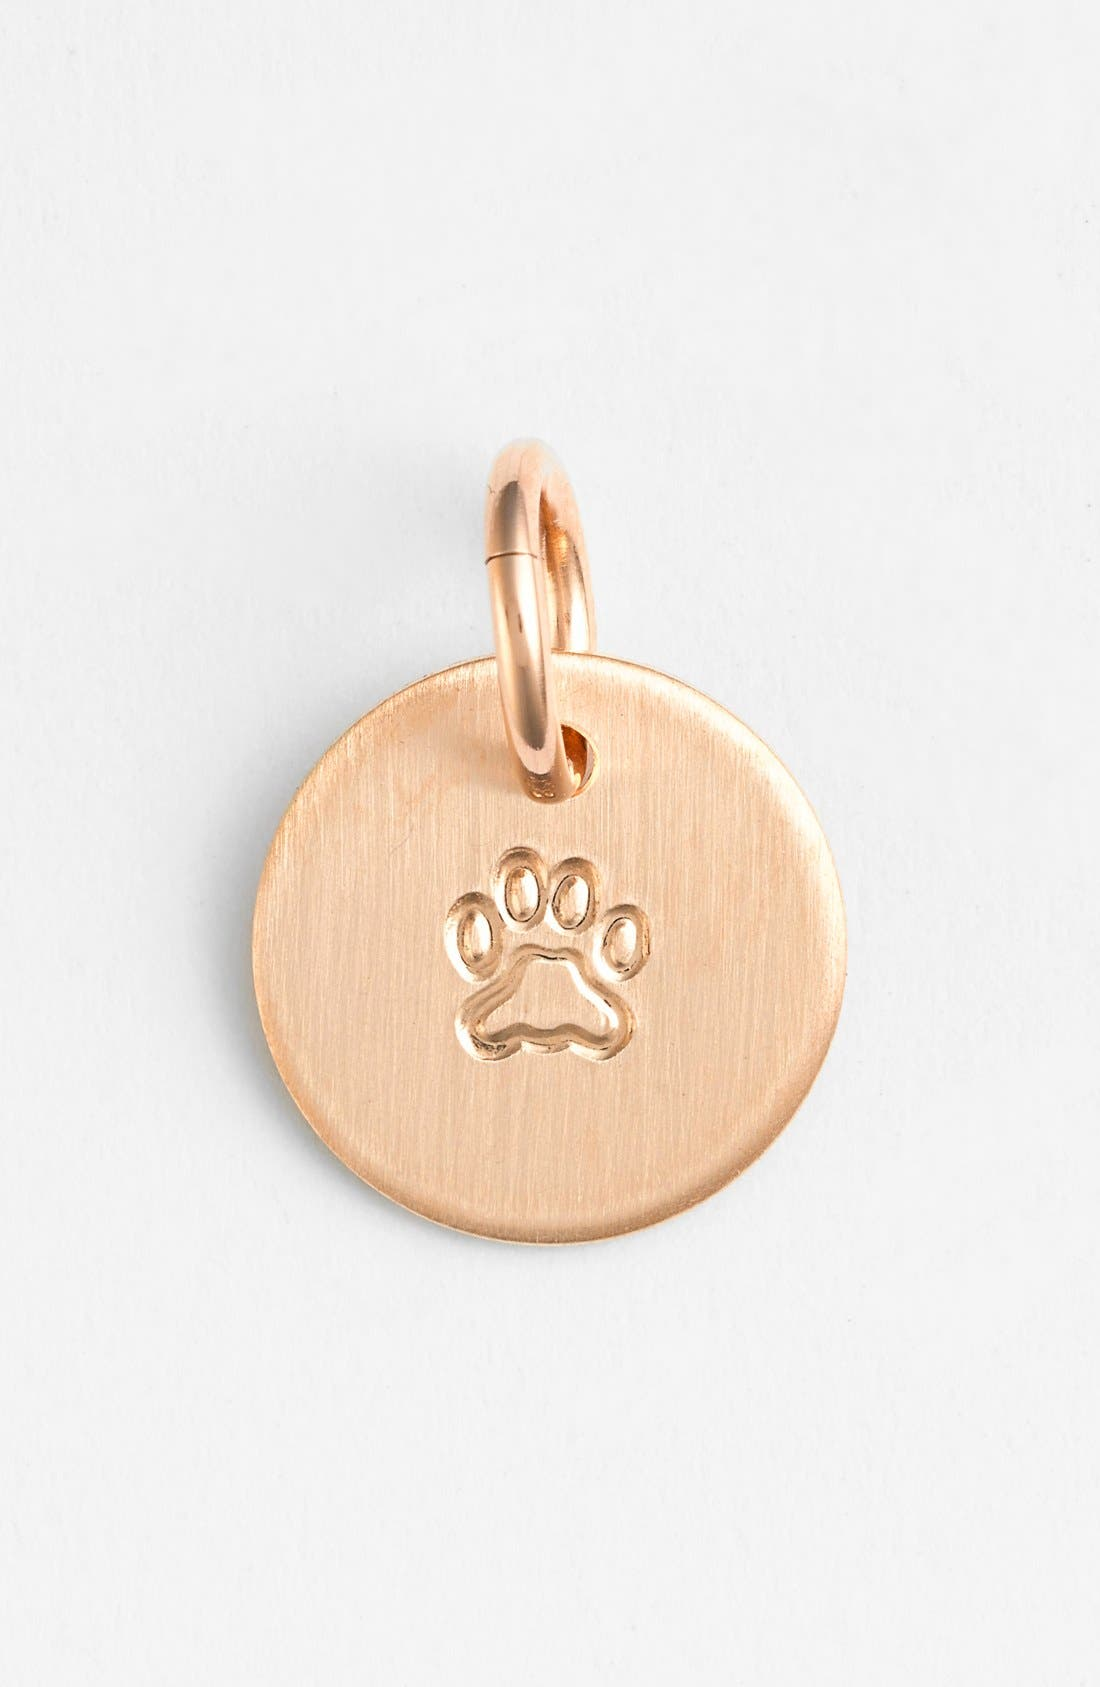 Paw Mini Stamp Charm,                         Main,                         color, 14K Rose Gold Fill Paw